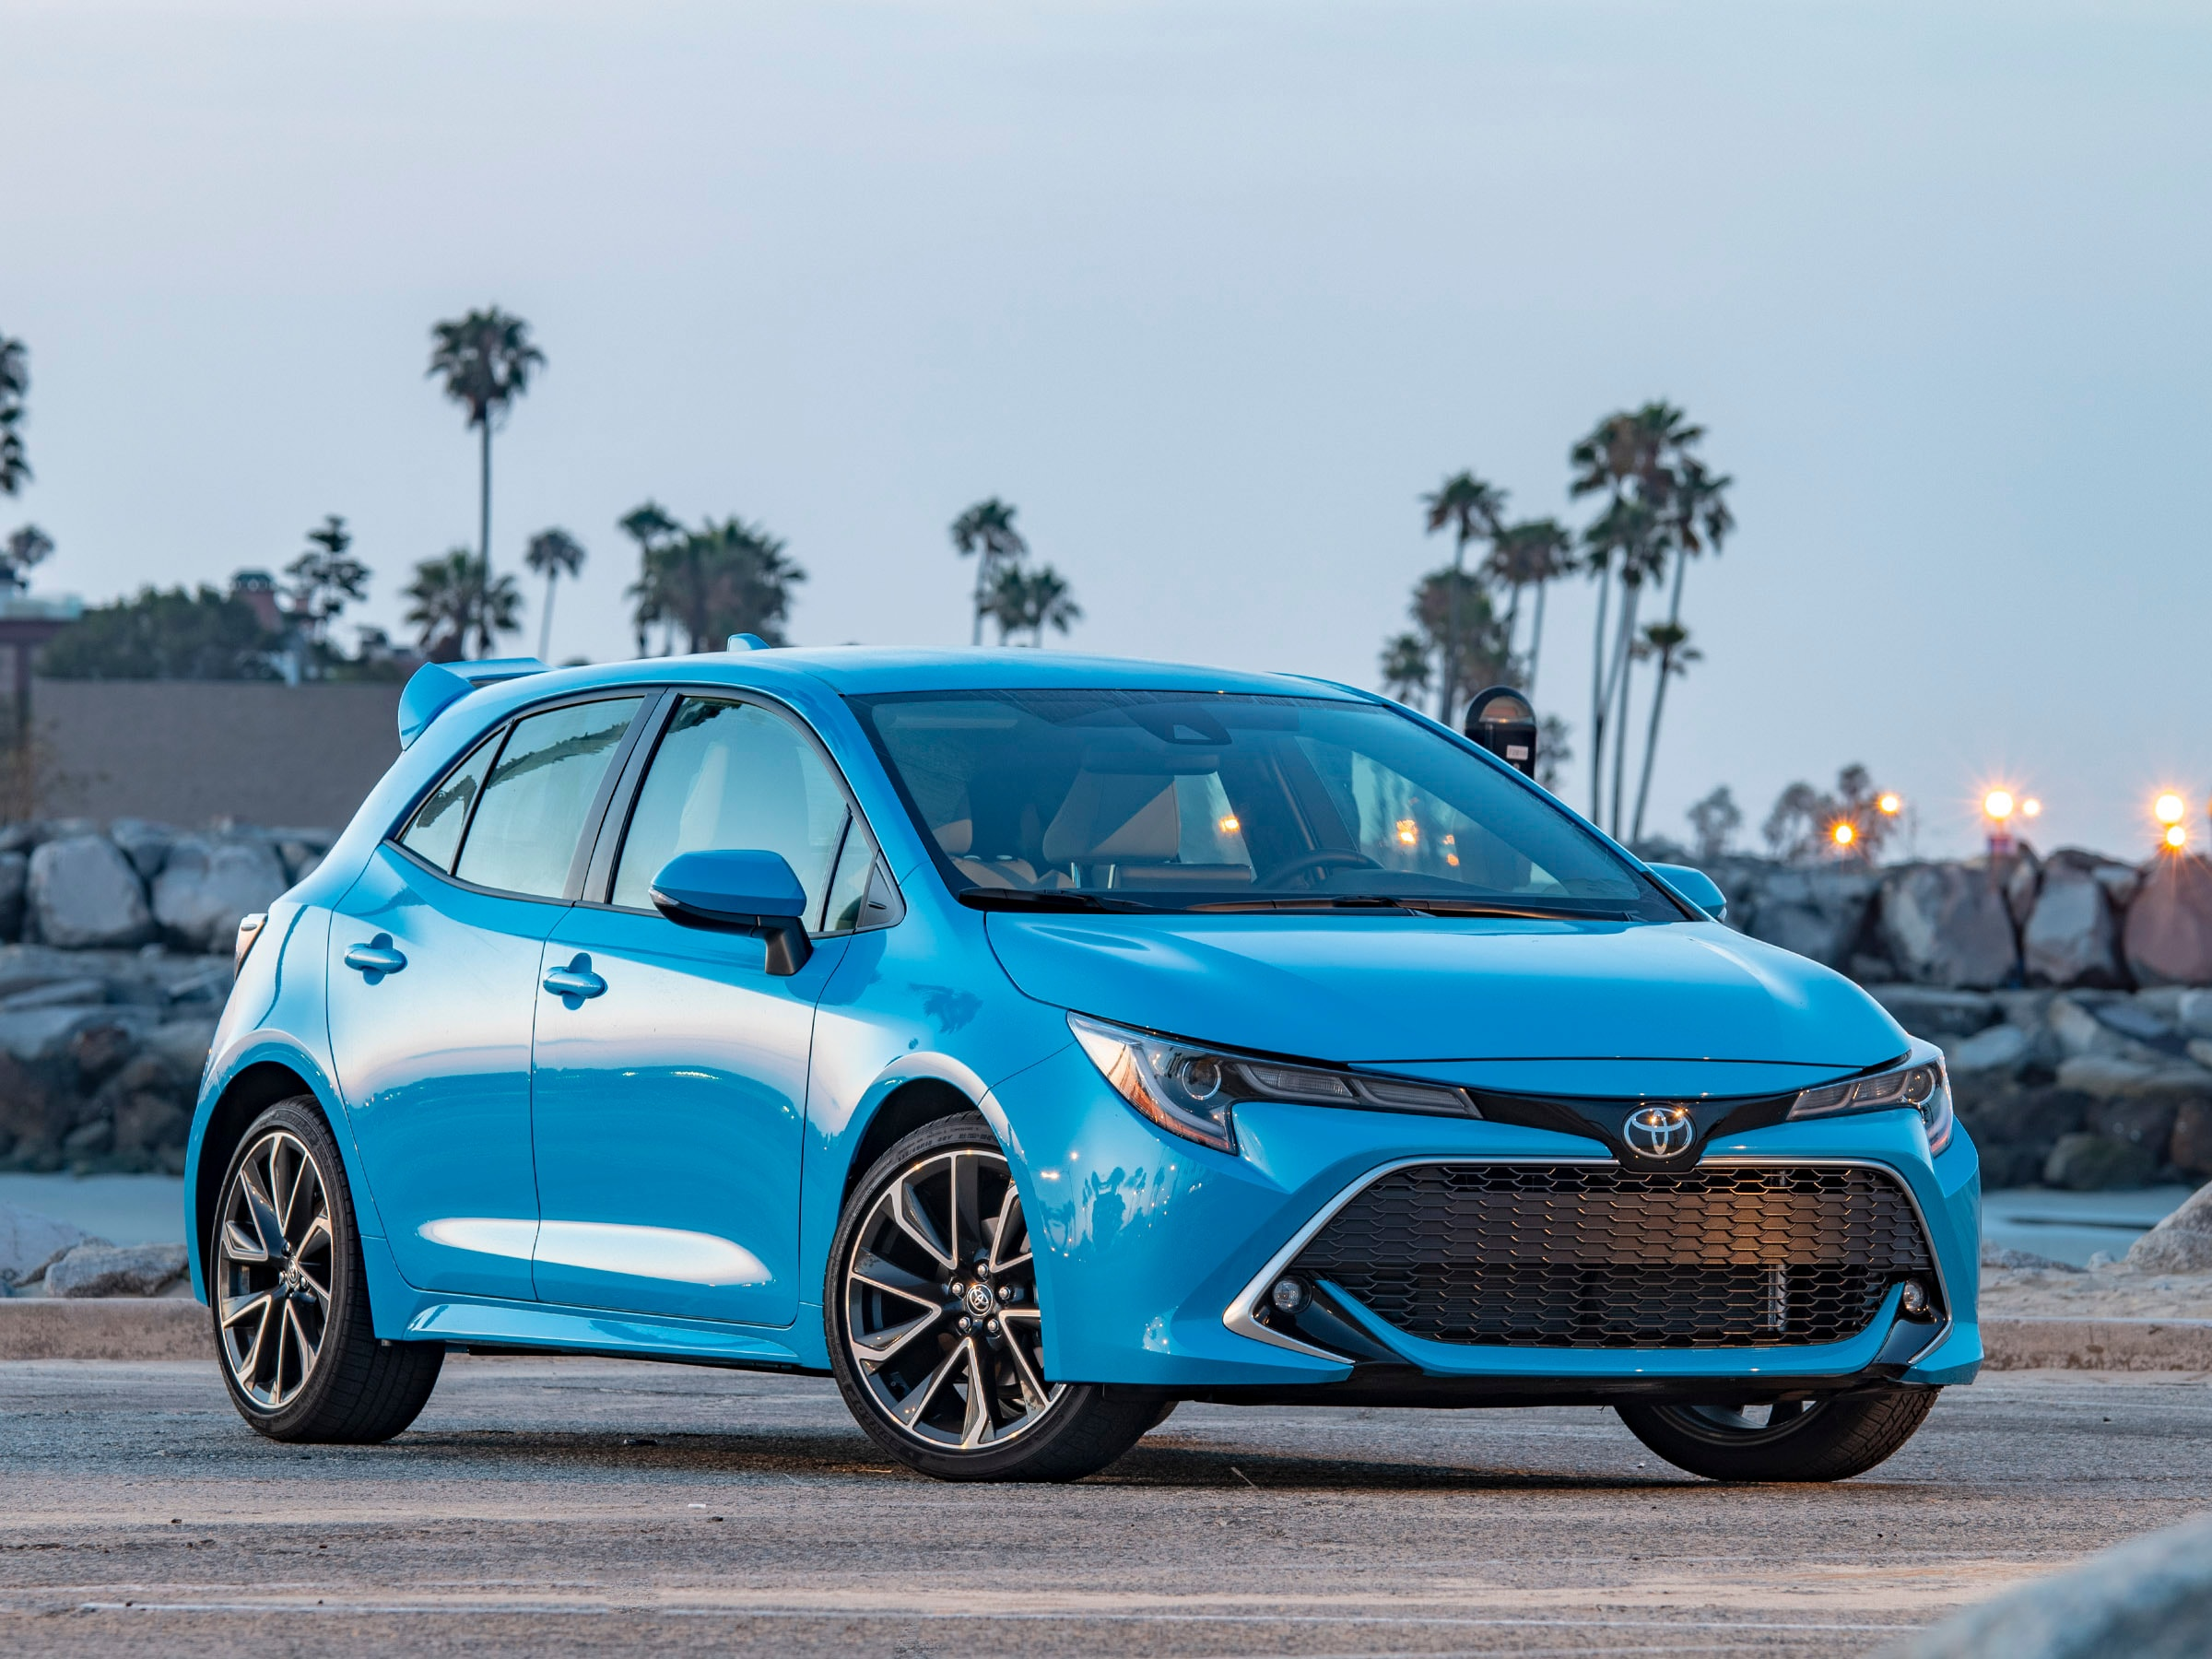 2021 Toyota Corolla Hatchback, cars under 20,000